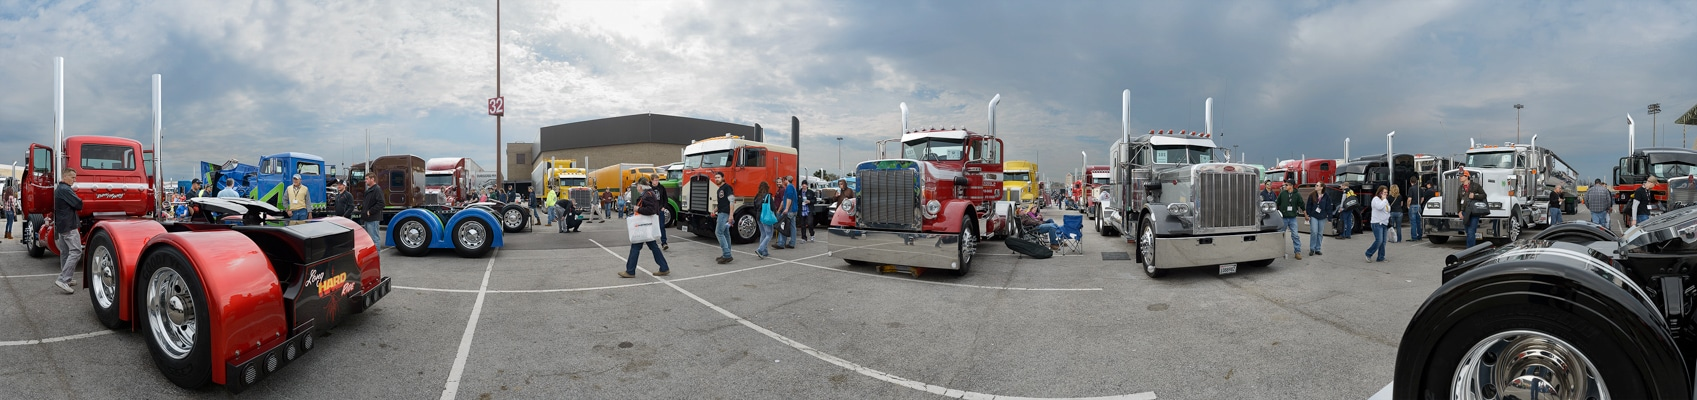 TRUCK || STOP<br/>Pride & Paint, Mid-Atlantic Truck Show<br/>Louisville, KY, March 2017